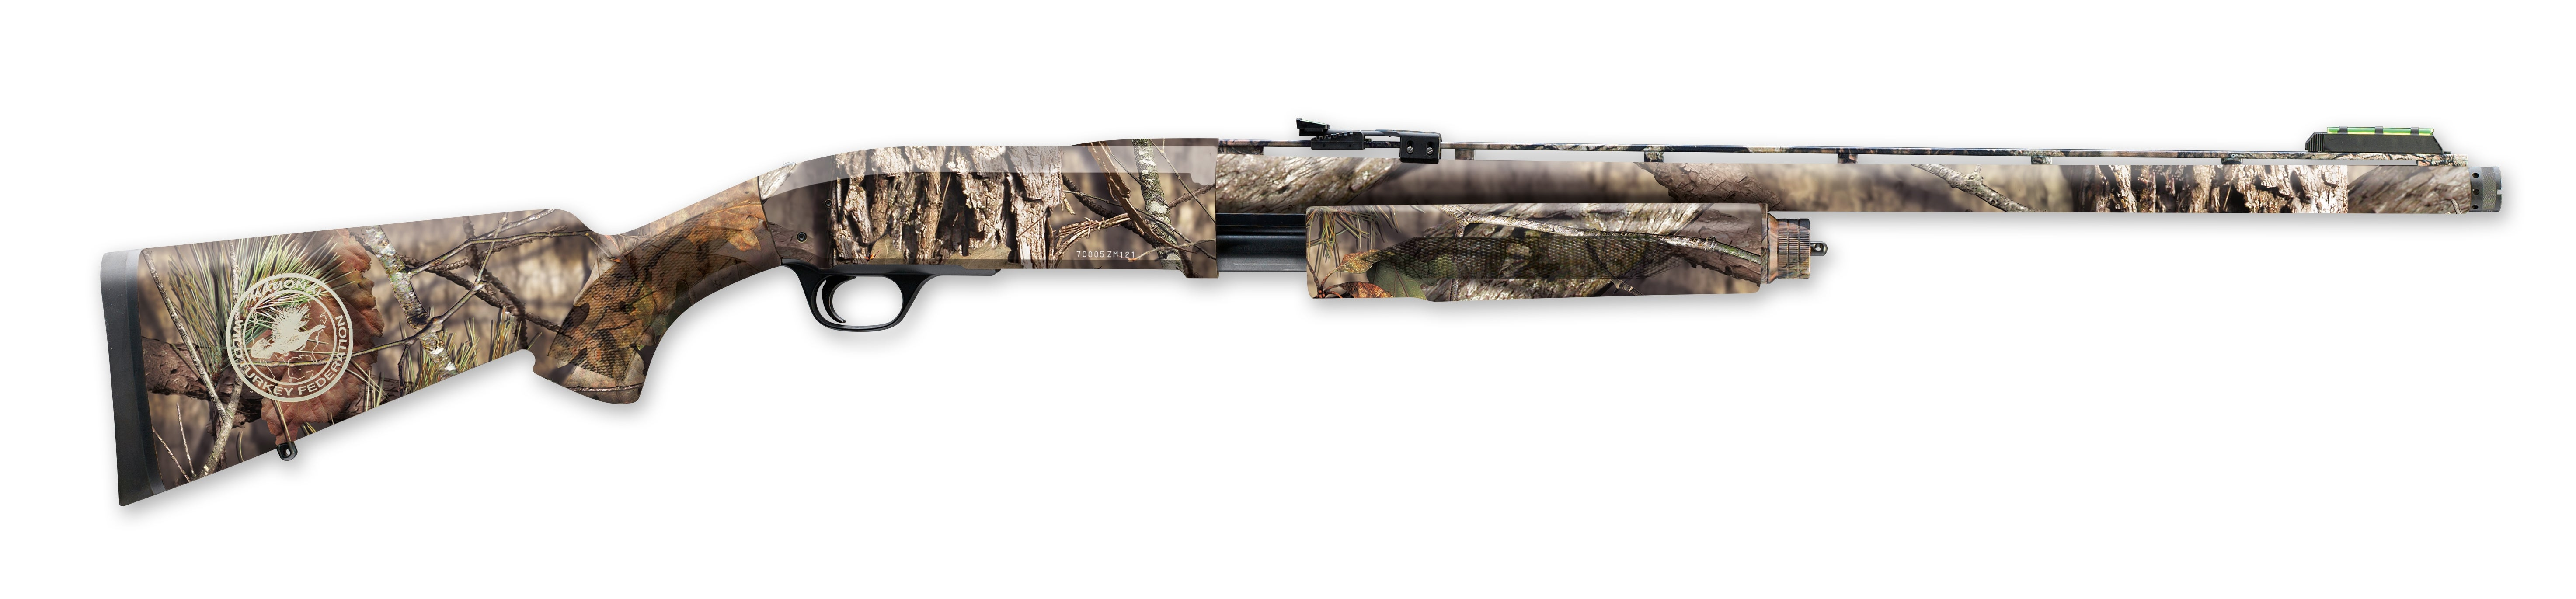 nwtf bps 10 gauge mossy oak break up country